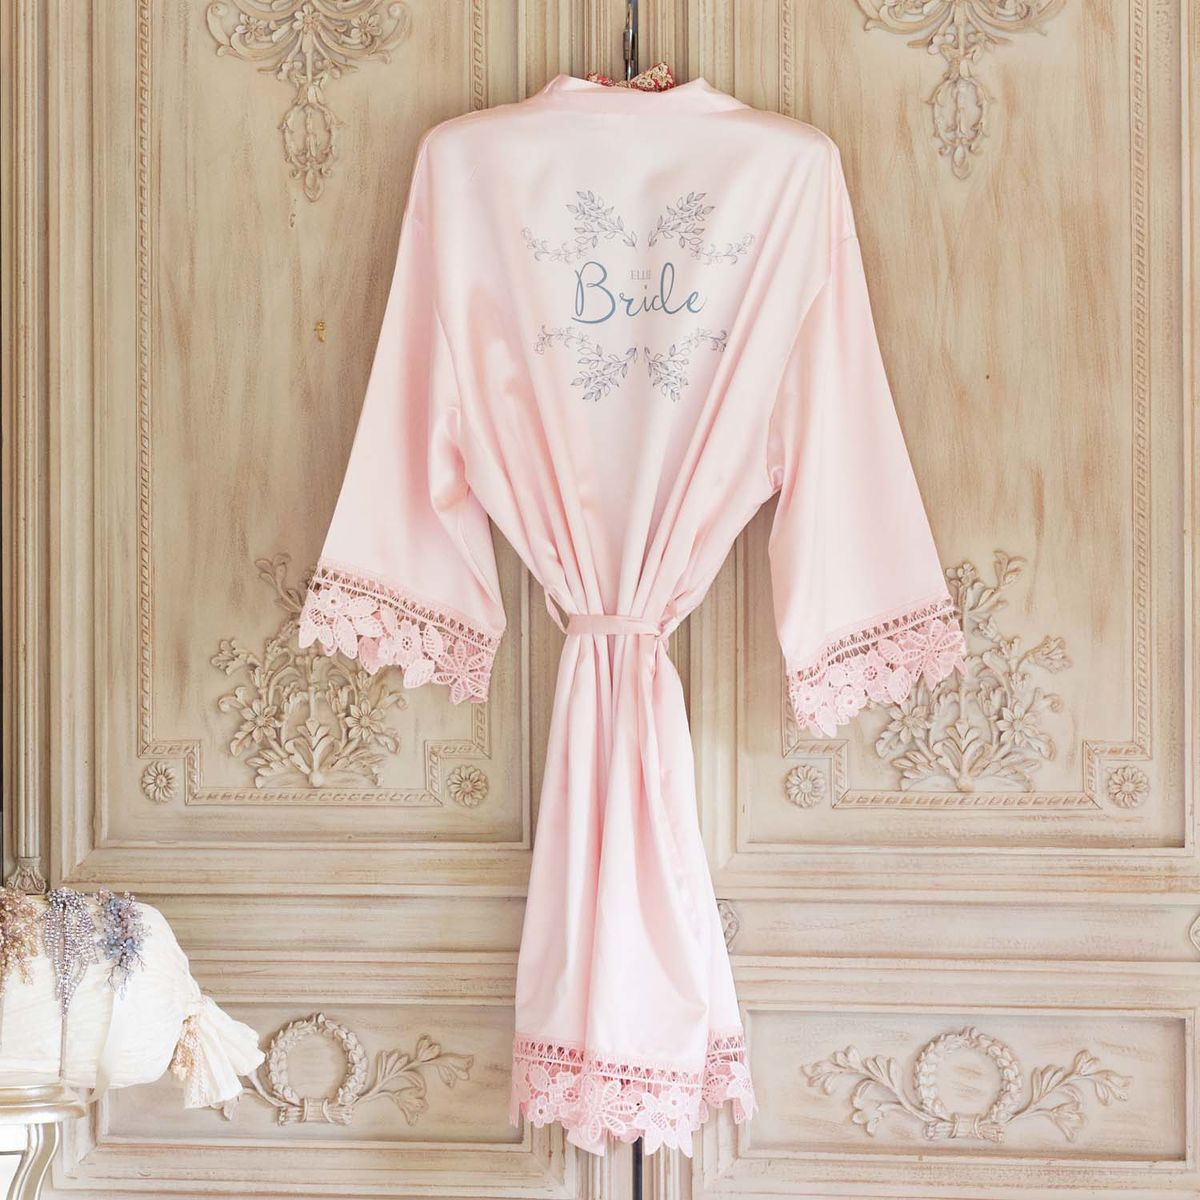 Blush Satin & Lace Kimonos - personalised - product images  of